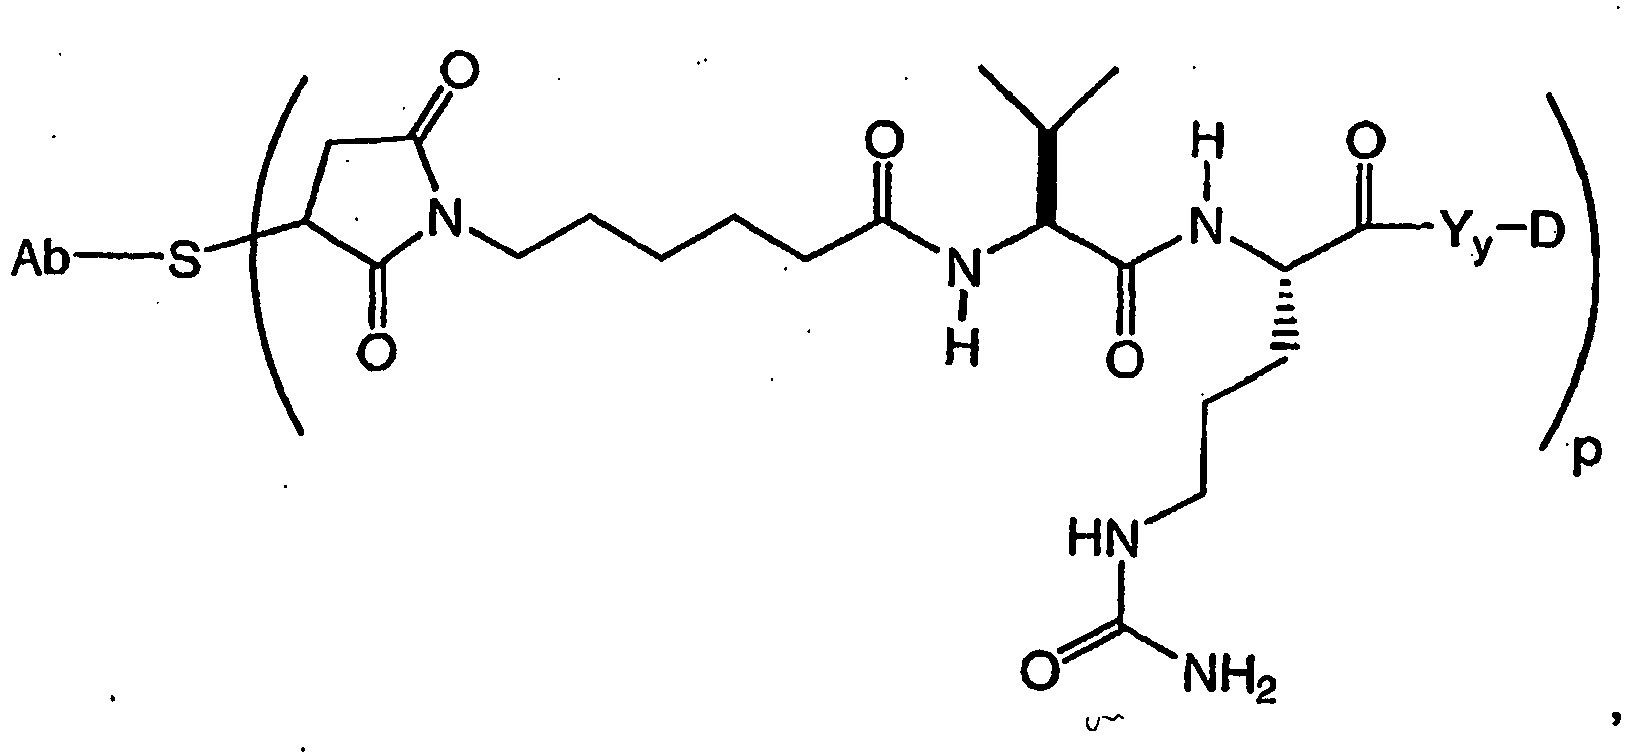 Ep2260858b1 Monomethylvaline Compounds Capable Of Conjugation To Kawasaki Wiring Diagrams For 1969 1972 H1 Triples Figure Imgb0059